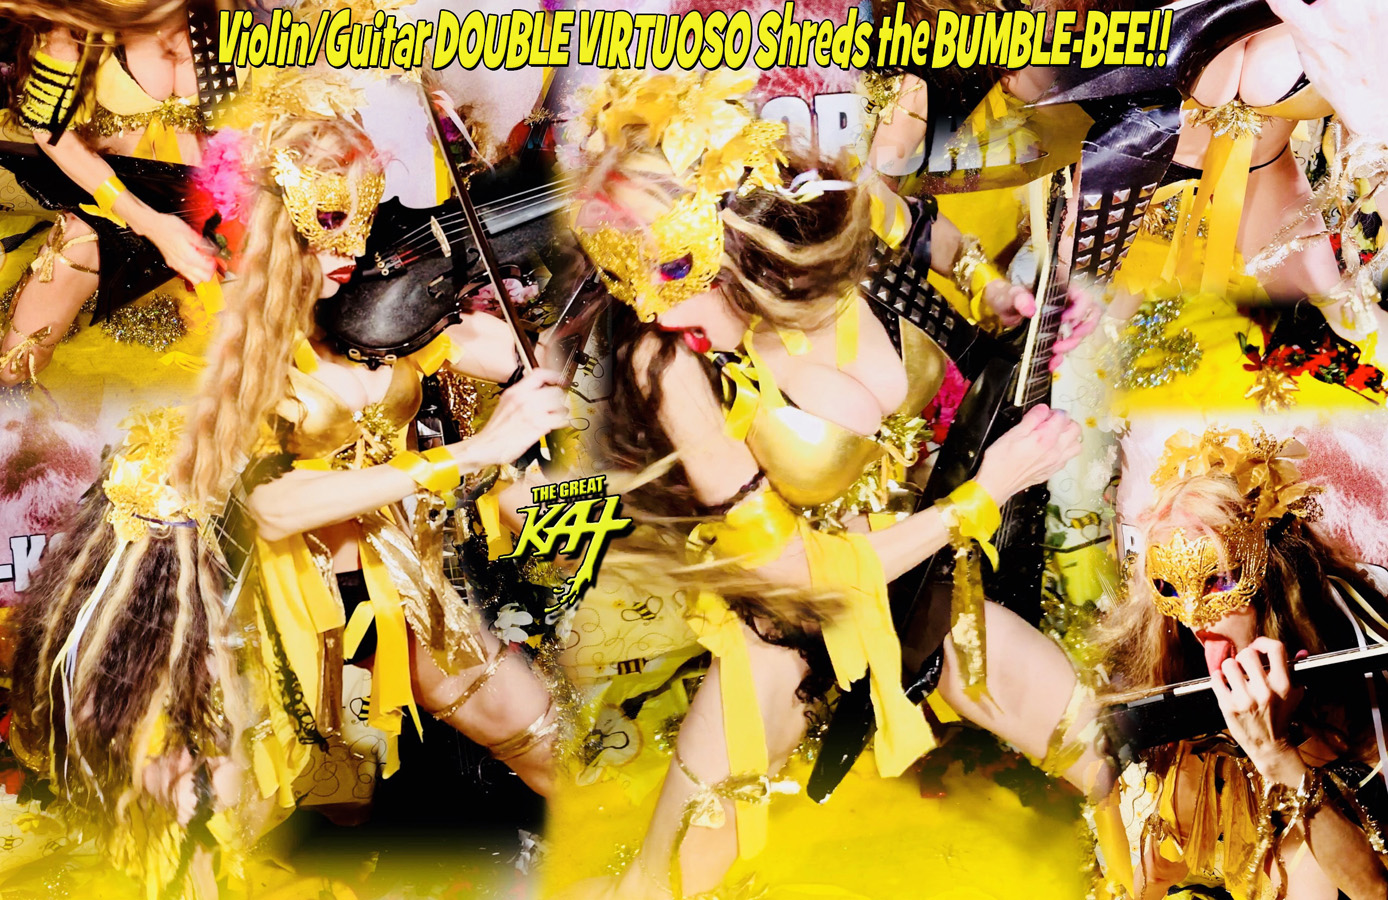 """Violin/Guitar DOUBLE VIRTUOSO Shreds the BUMBLE-BEE!! From """"CHEF GREAT KAT COOKS RUSSIAN CAVIAR AND BLINI WITH RIMSKY-KORSAKOV"""" VIDEO!!"""